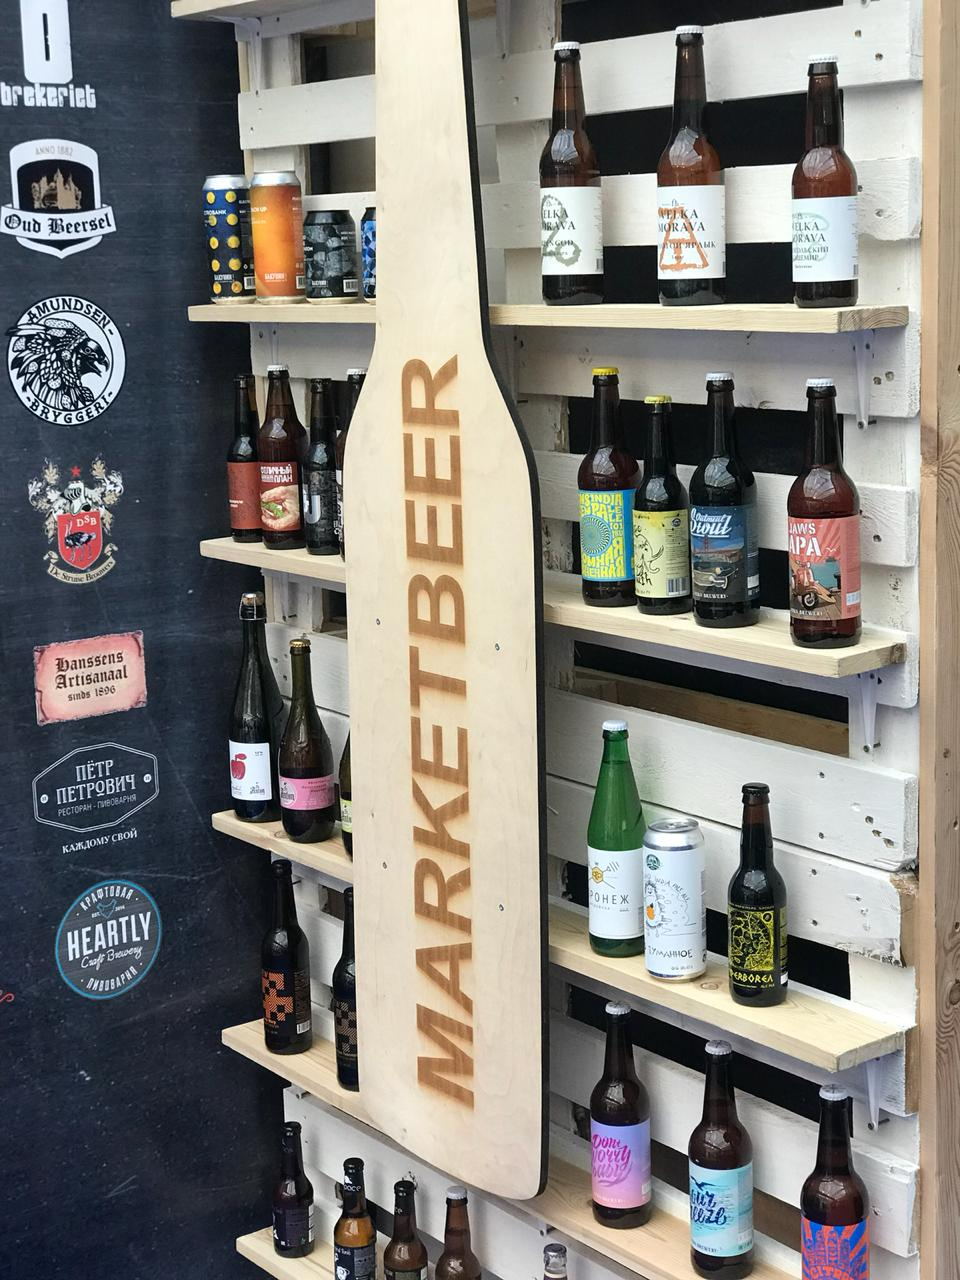 https://center.beer/wp-content/uploads/2019/06/craft-beer-market.jpeg